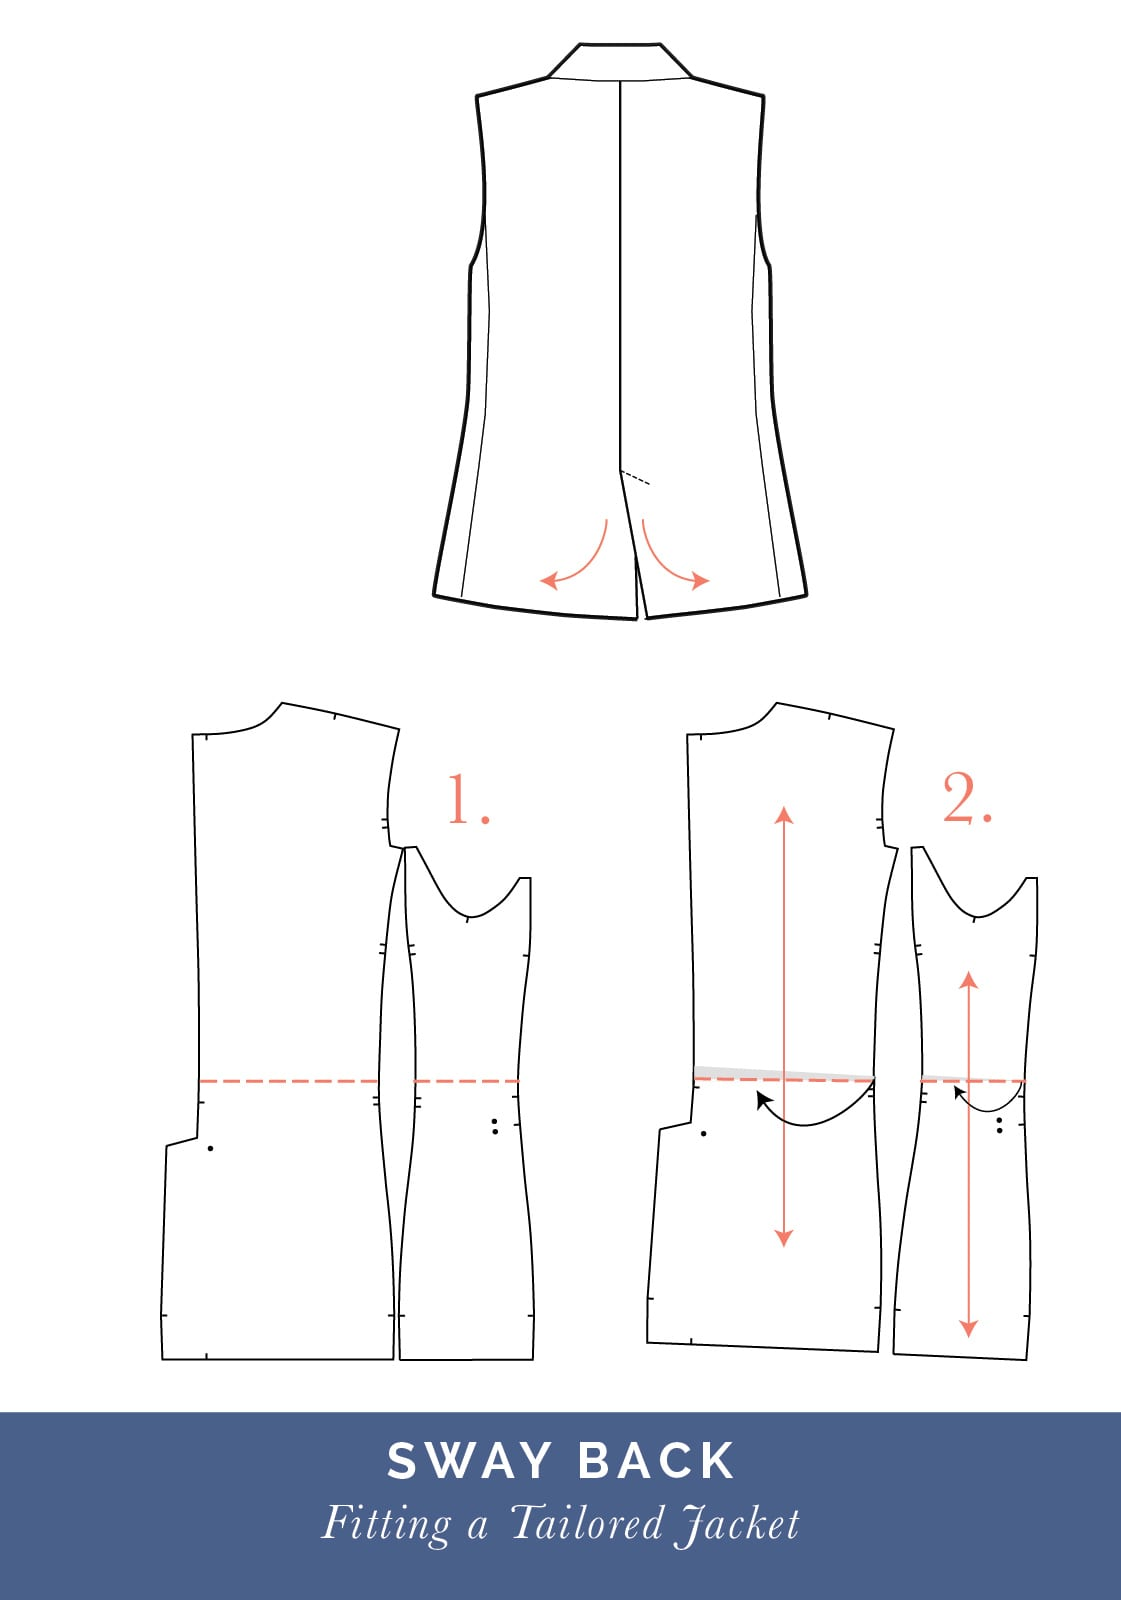 Sway back adjustment // How to fit a Tailored jacket or Blazer // Fit adjustment issues and fixes